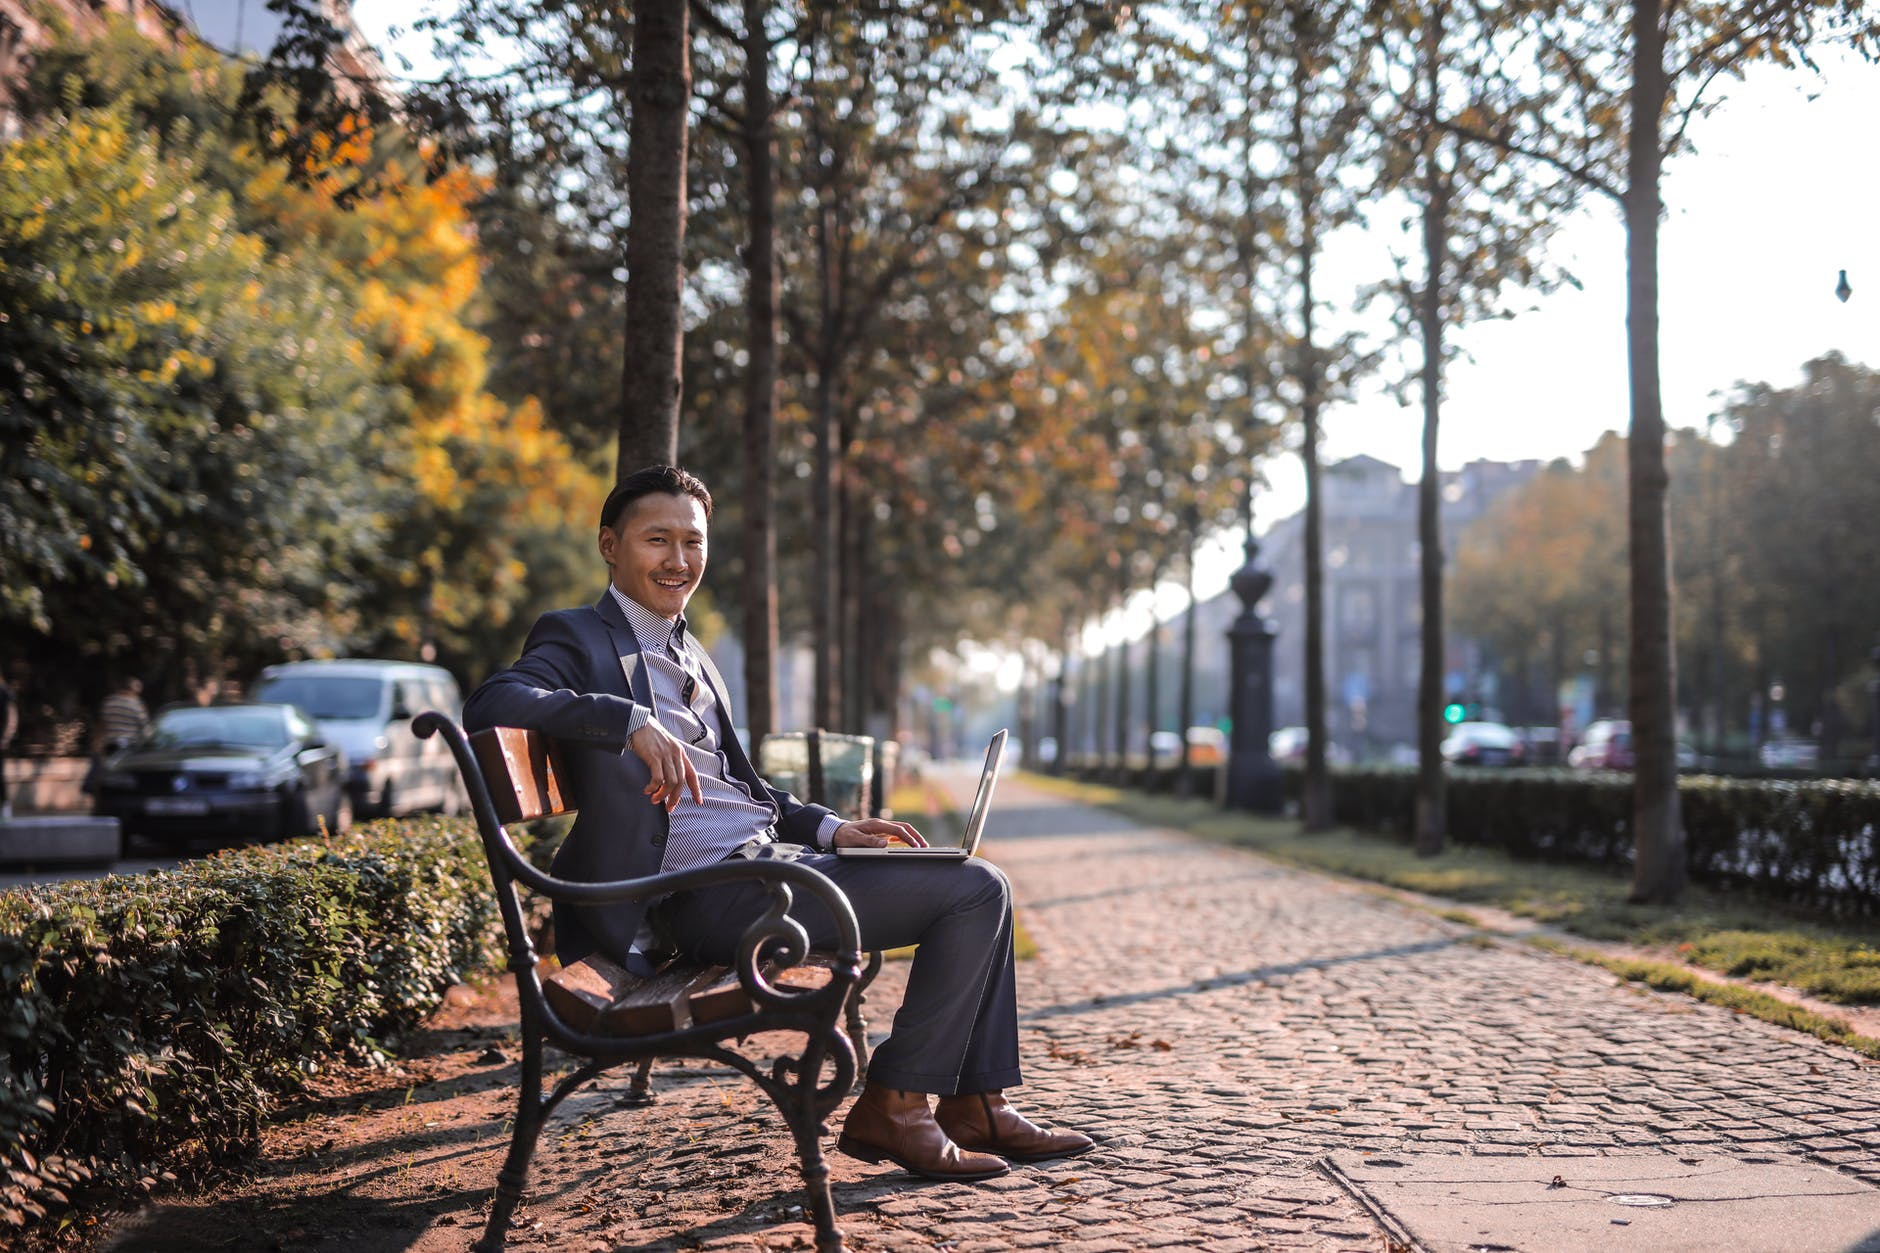 man in grey suit sitting on park bench using laptop